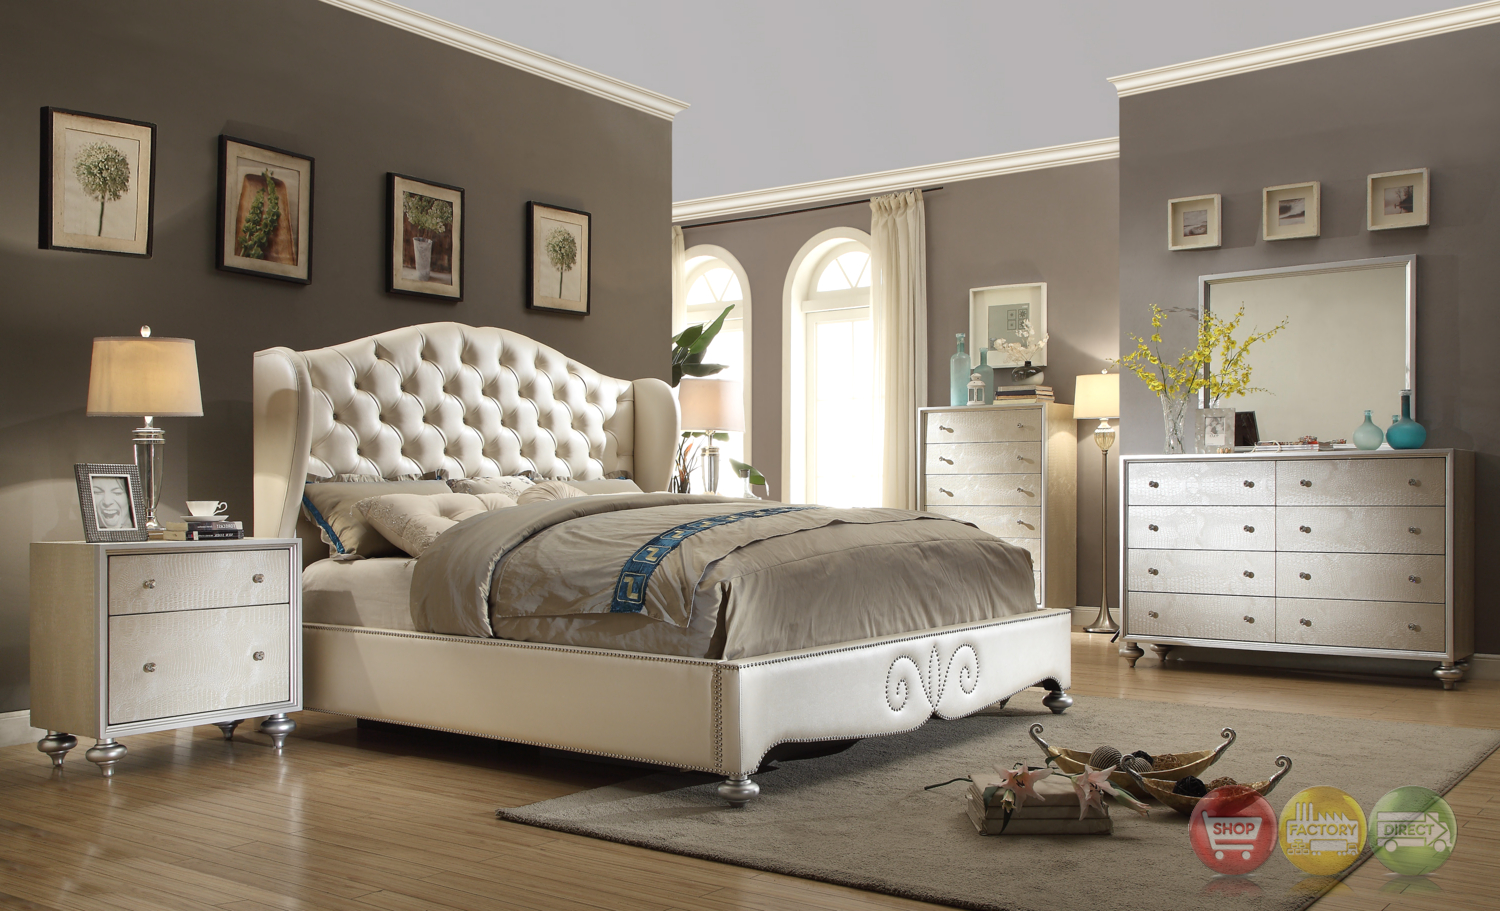 Glamorous pearl white button tufted wing back bed faux for White bedroom furniture set